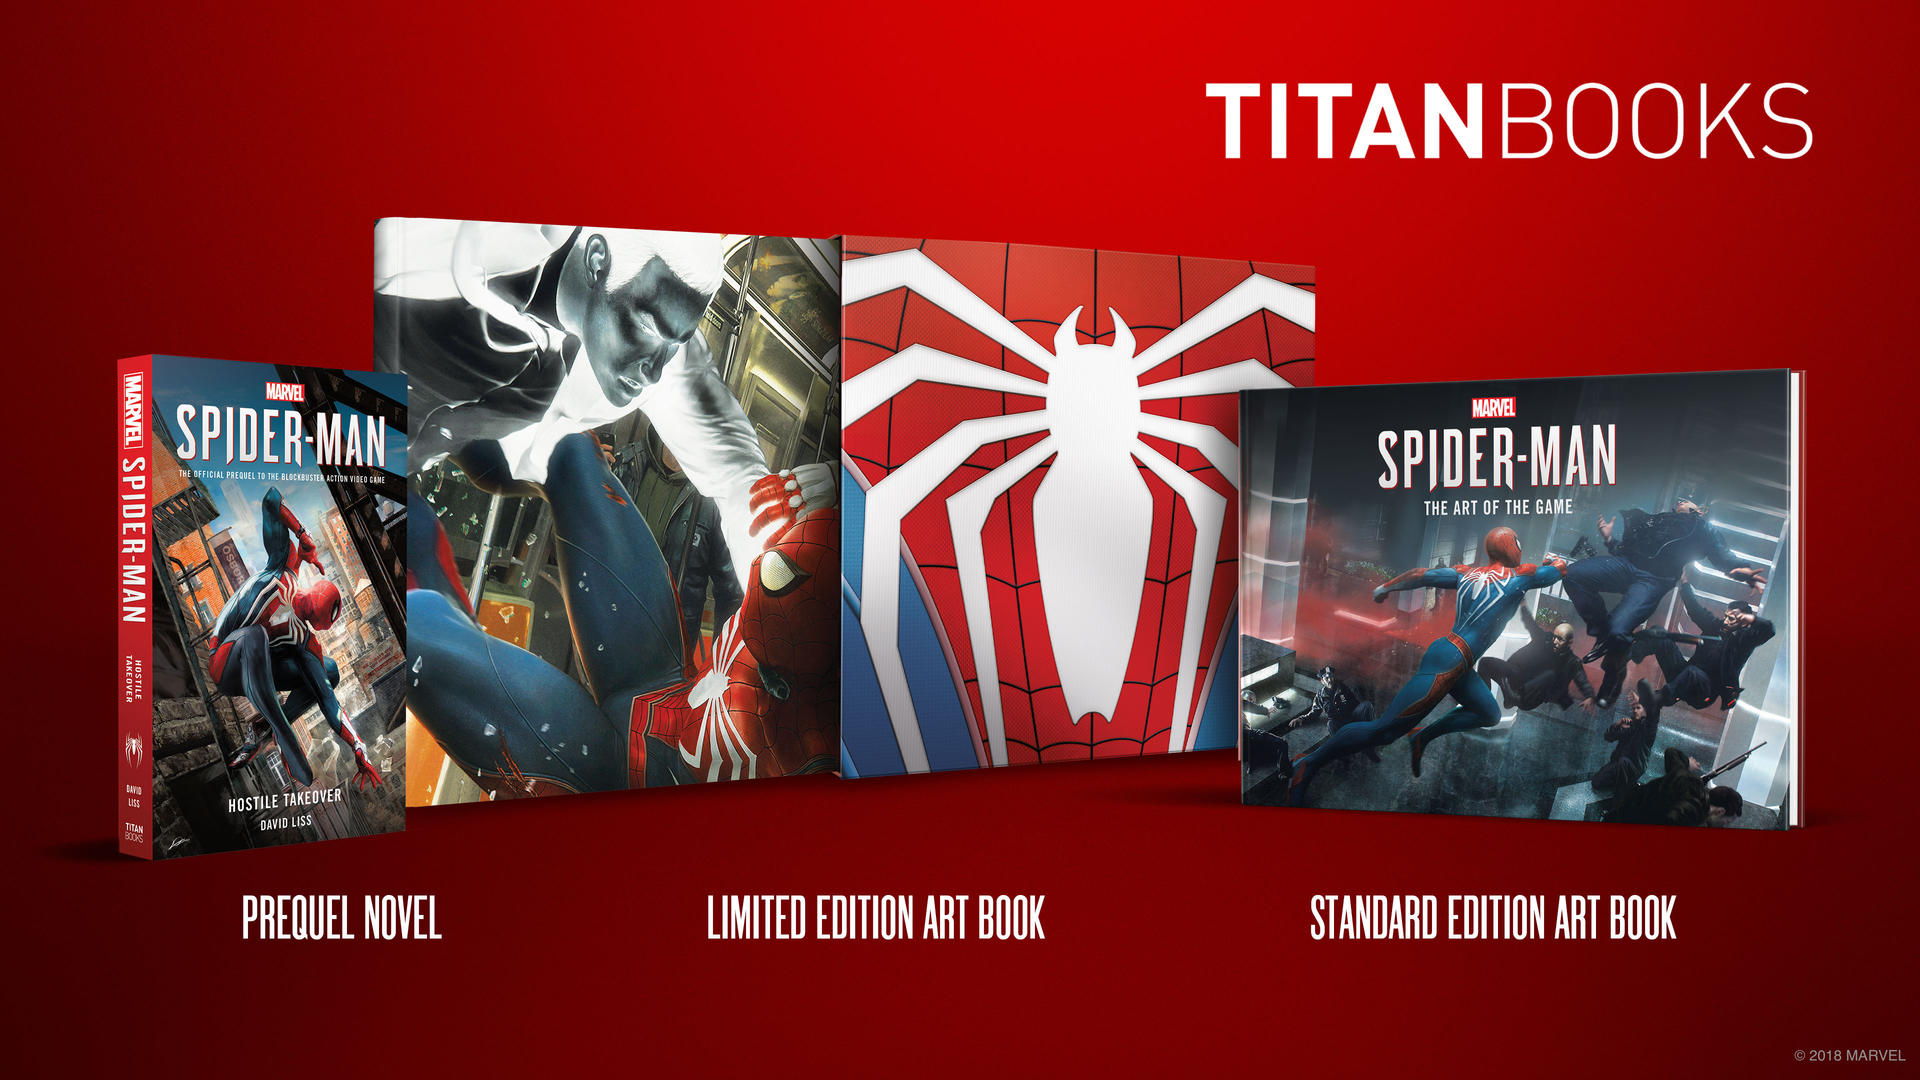 Marvel's Spider-Man Titan Books